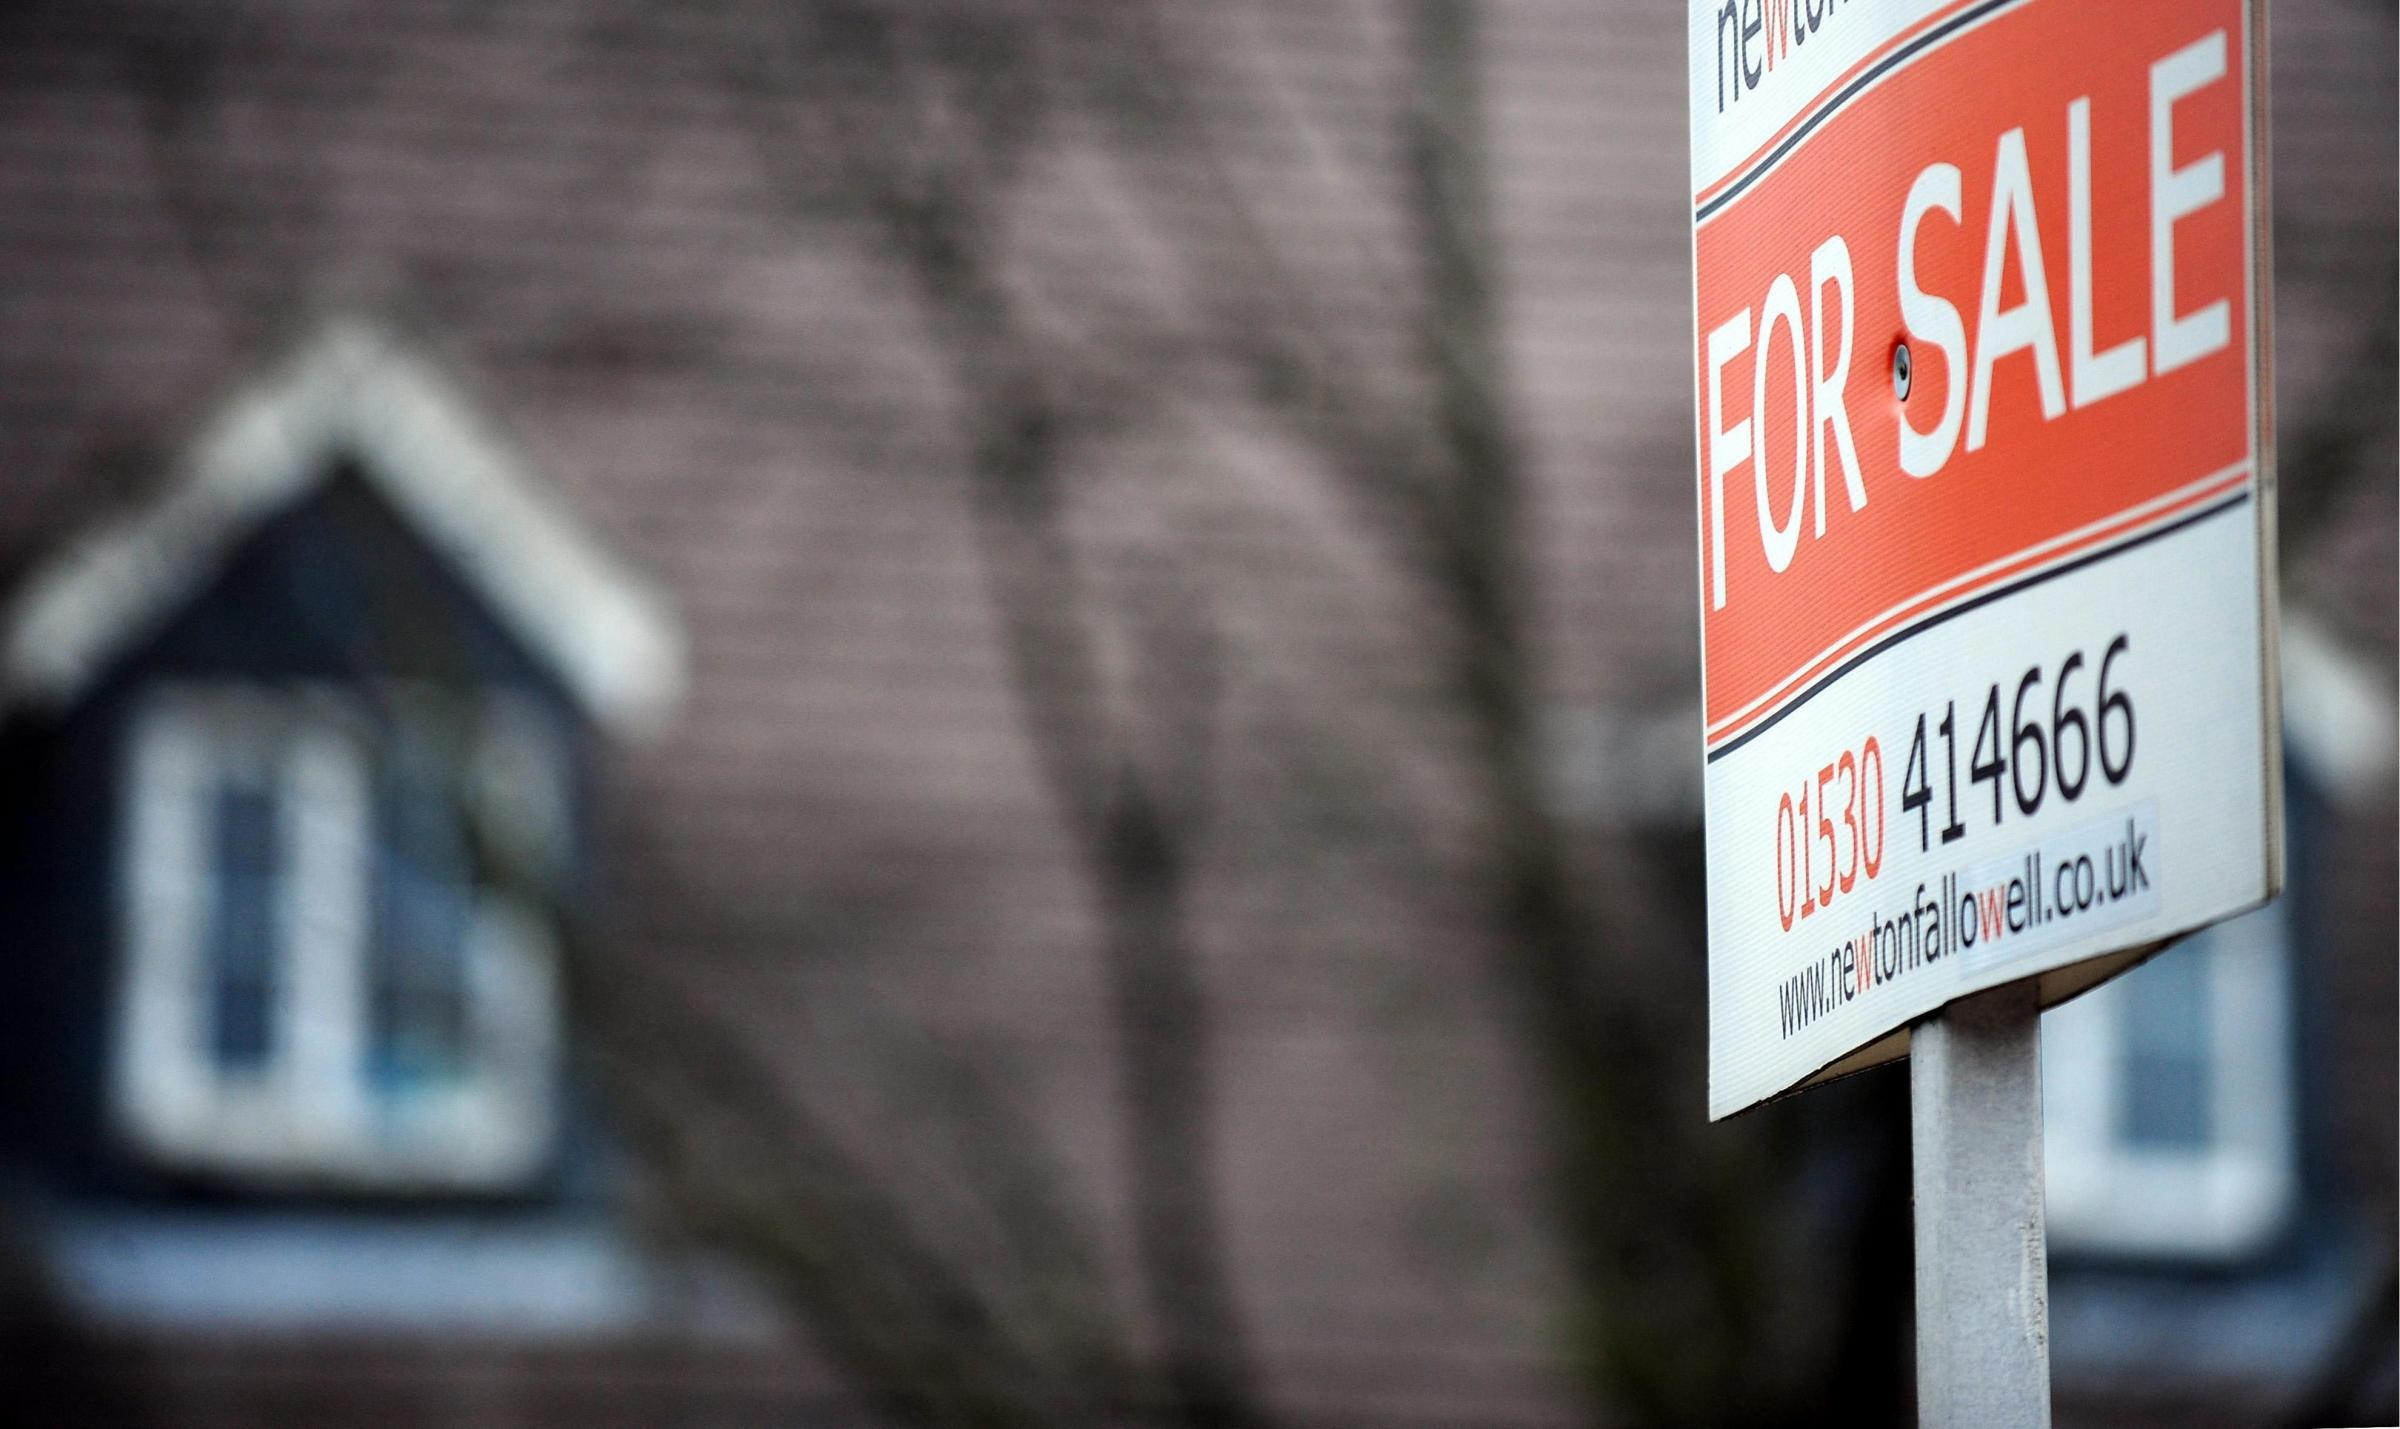 File photo dated 28/02/2012 of a general view of for sale sign in Derbyshire as house prices have fallen for the first time in seven months as the number of potential buyers shrinks while the volume of homes going on the market rises, a study said today.